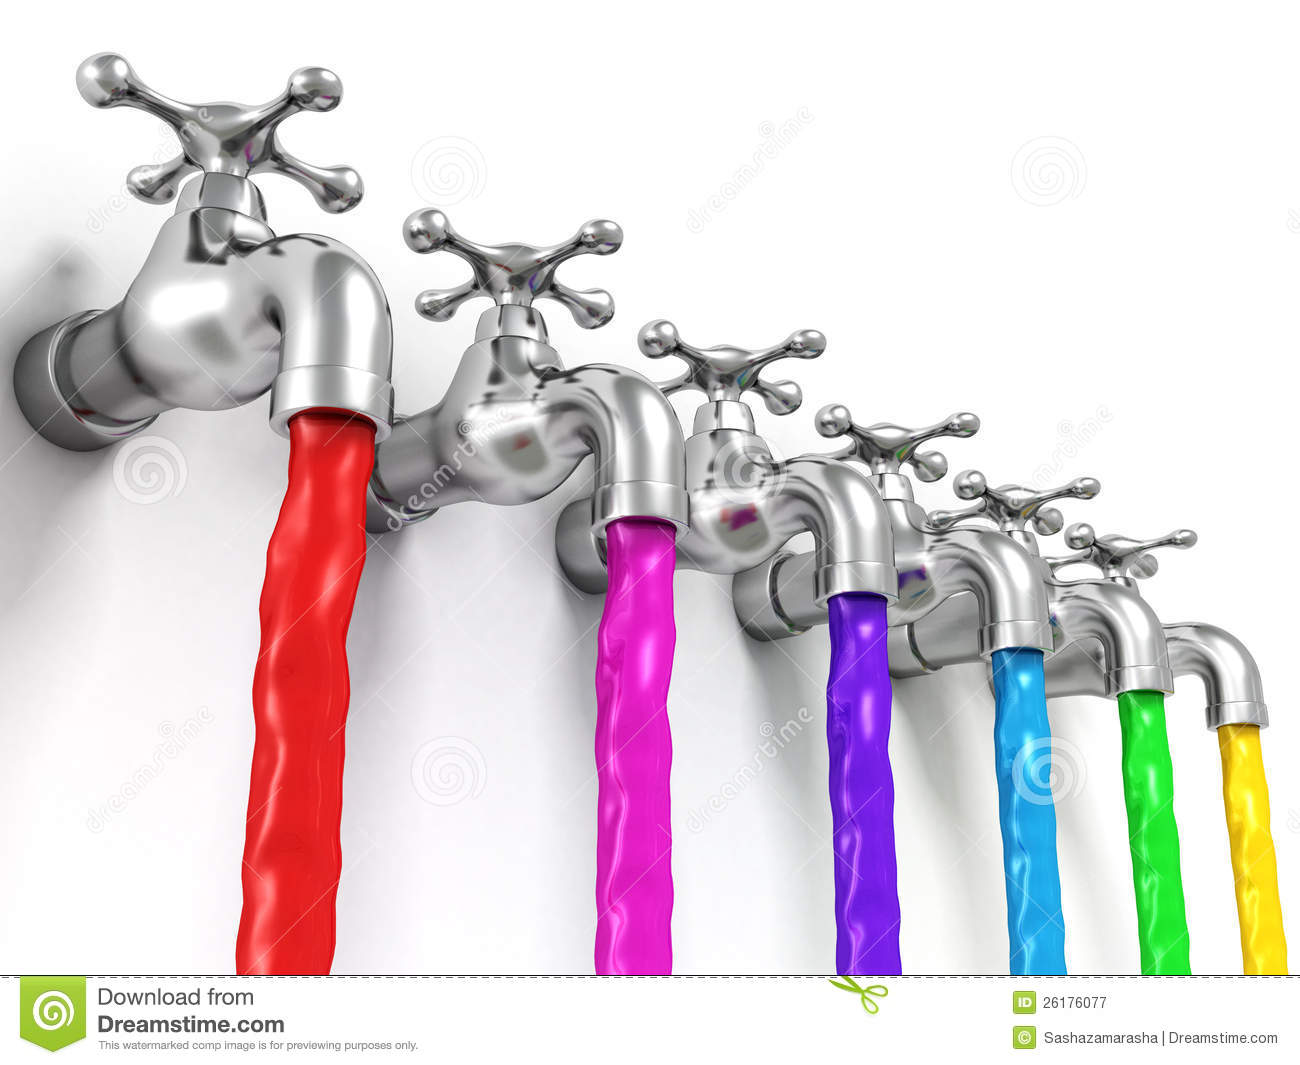 Raw of taps with paint jets on white background